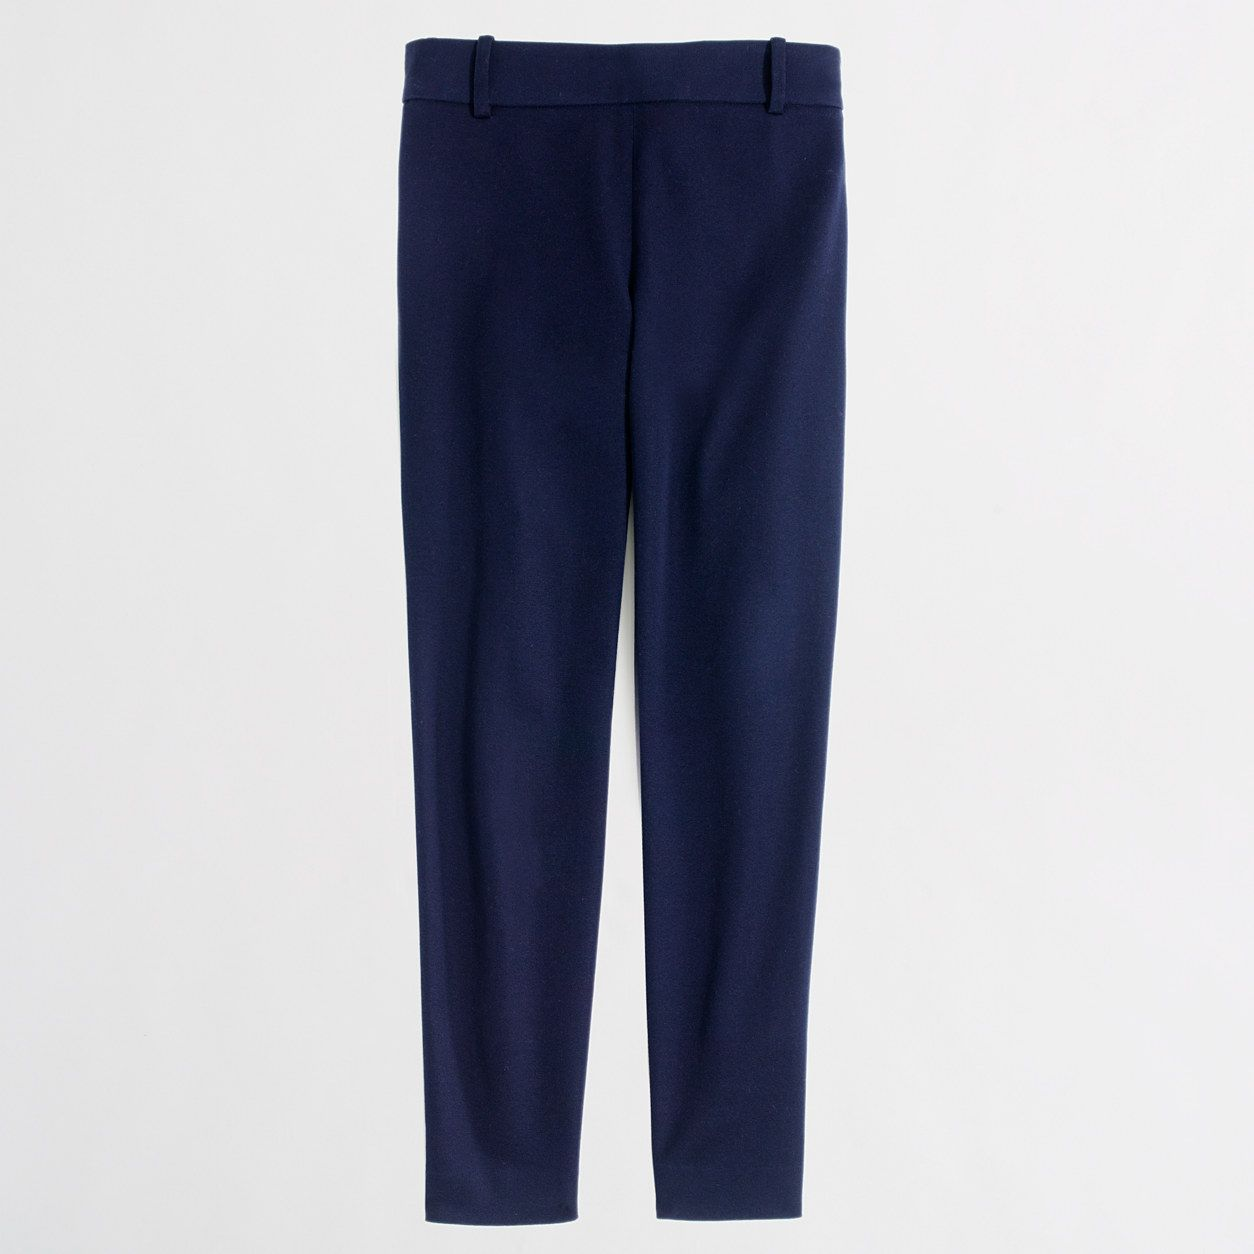 Factory petite Winnie pant in stretch twill : Petites | J.Crew Factory. Navy and Black. 0